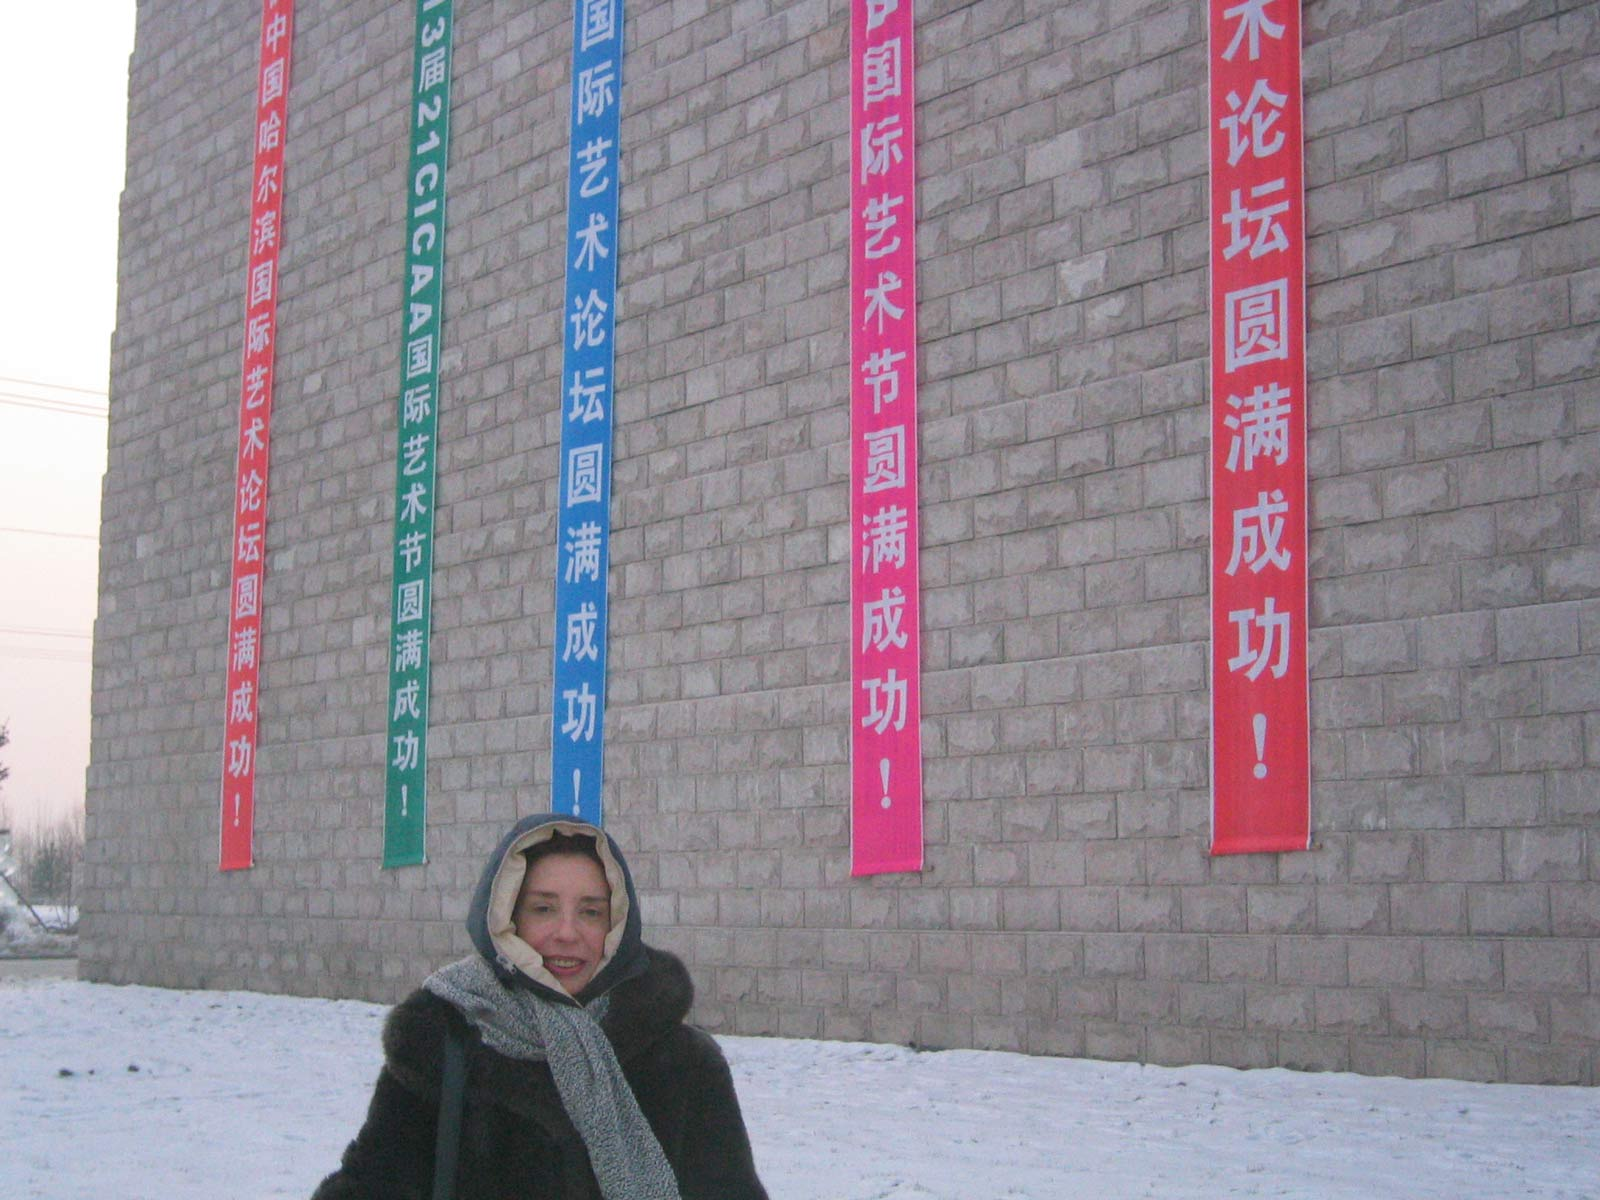 YONG SOO HARBIN - CHINA 2006